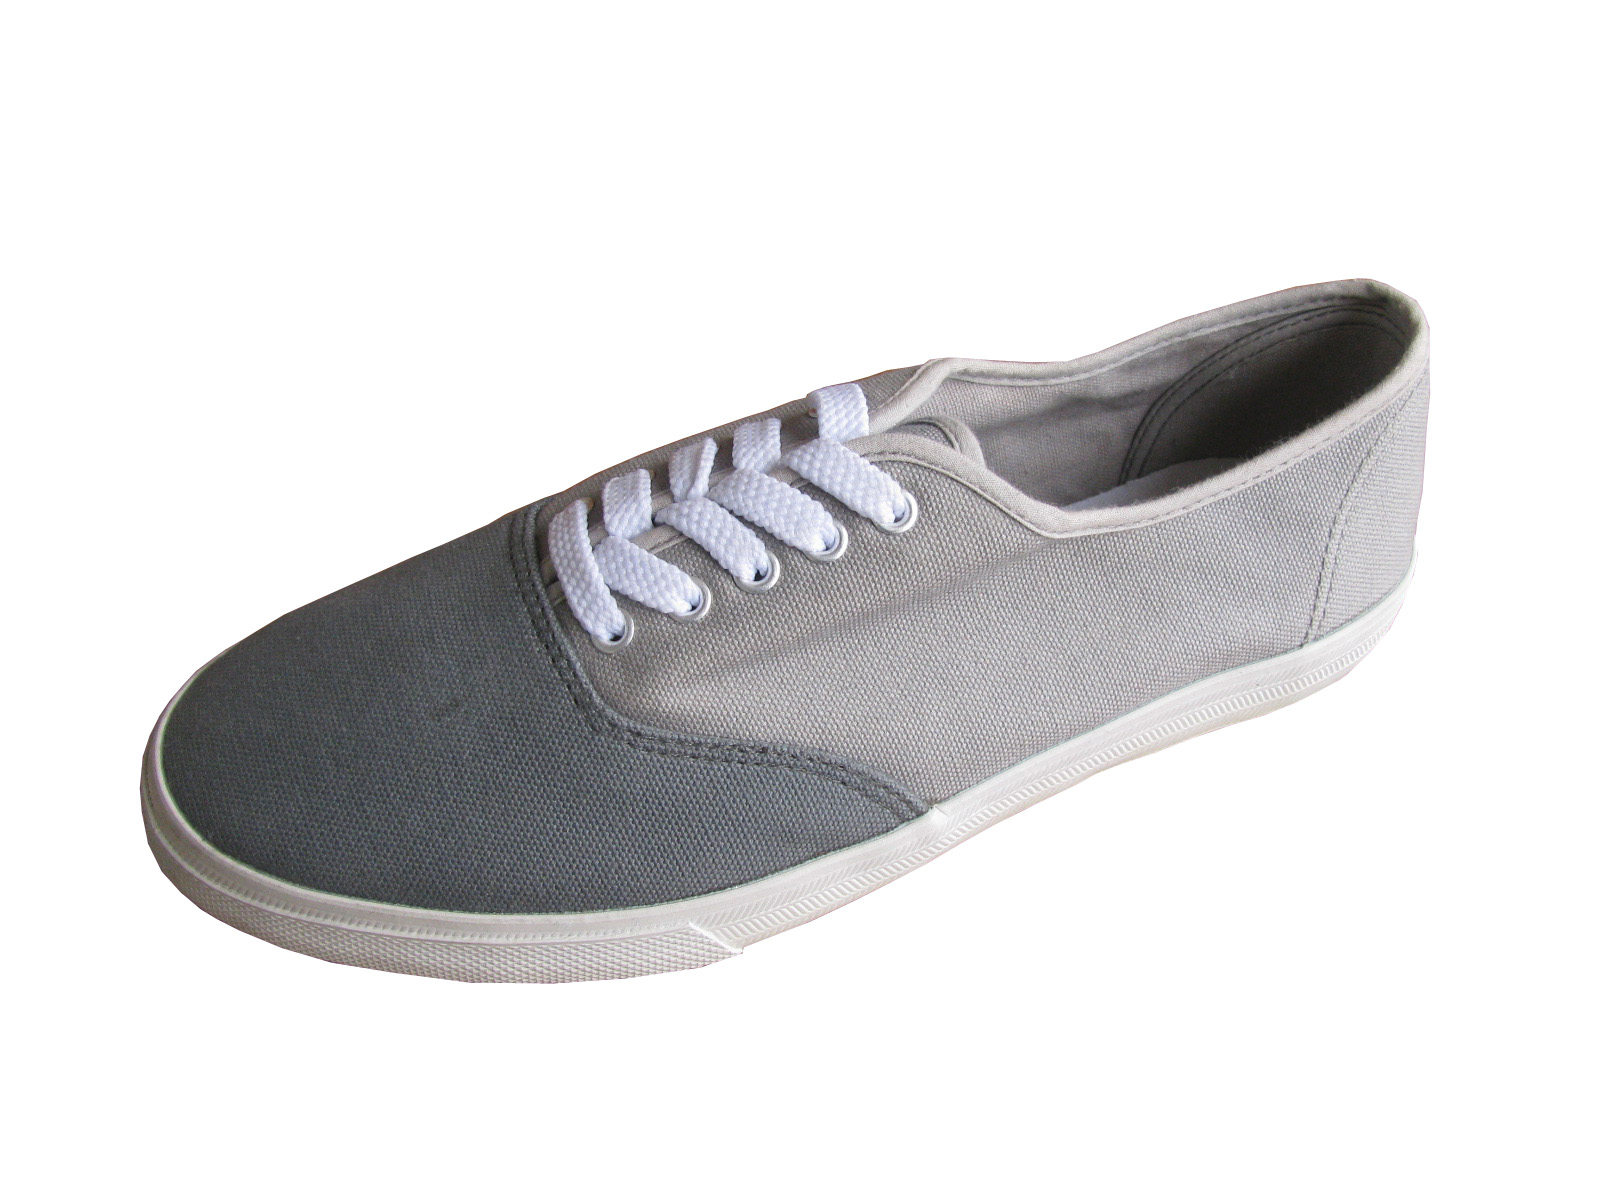 Product Name: Men Canvas Vulcanized Shoes